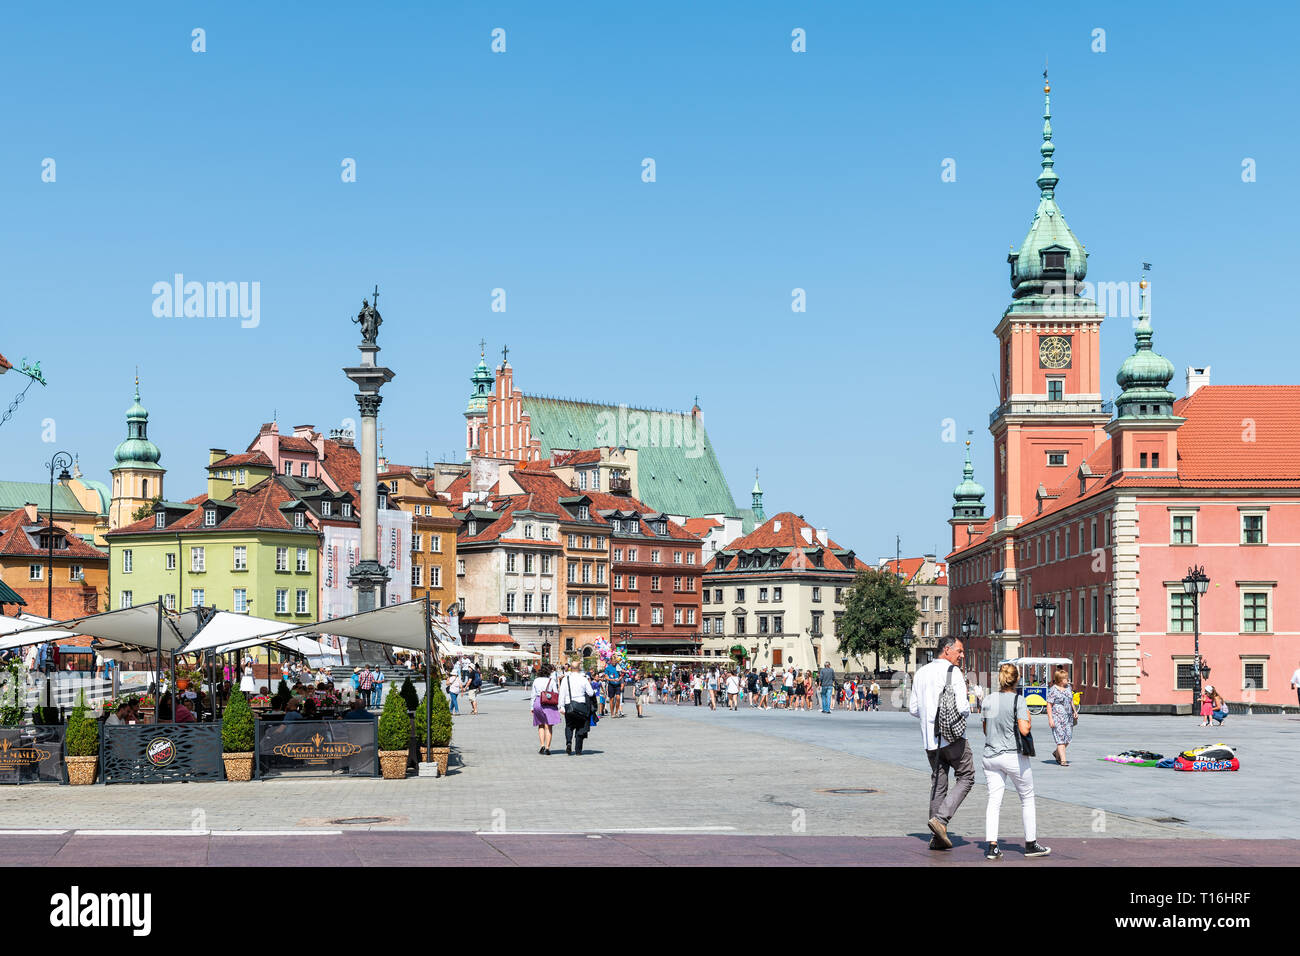 Warsaw, Poland - August 23, 2018: Famous old town historic